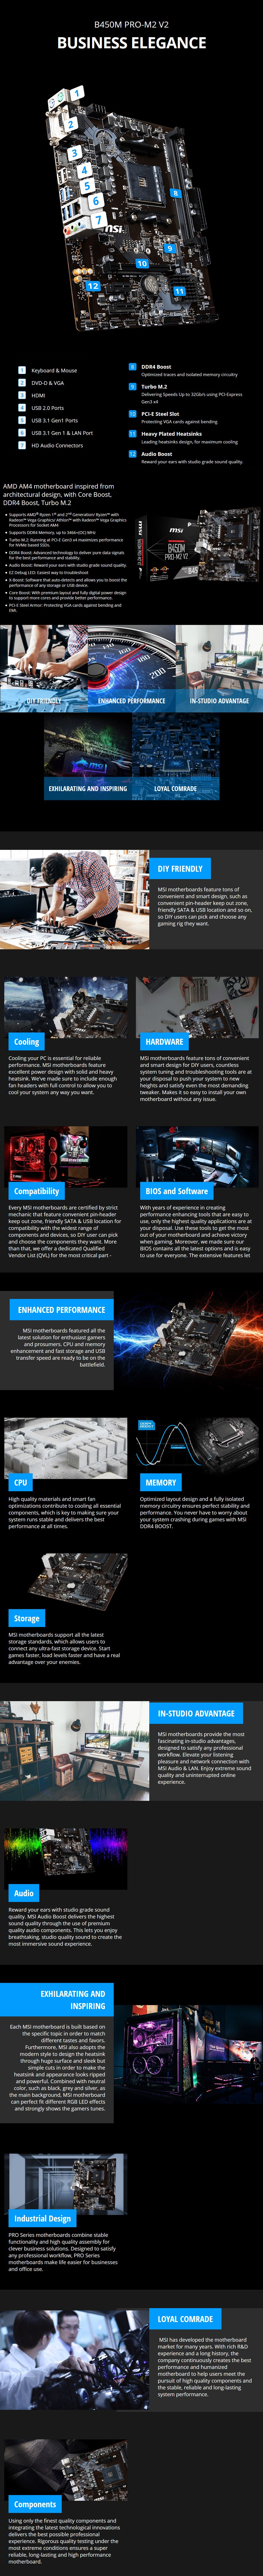 MSI B450M PRO-M2-V2 AM4 M-ATX Motherboard - Desktop Overview 1